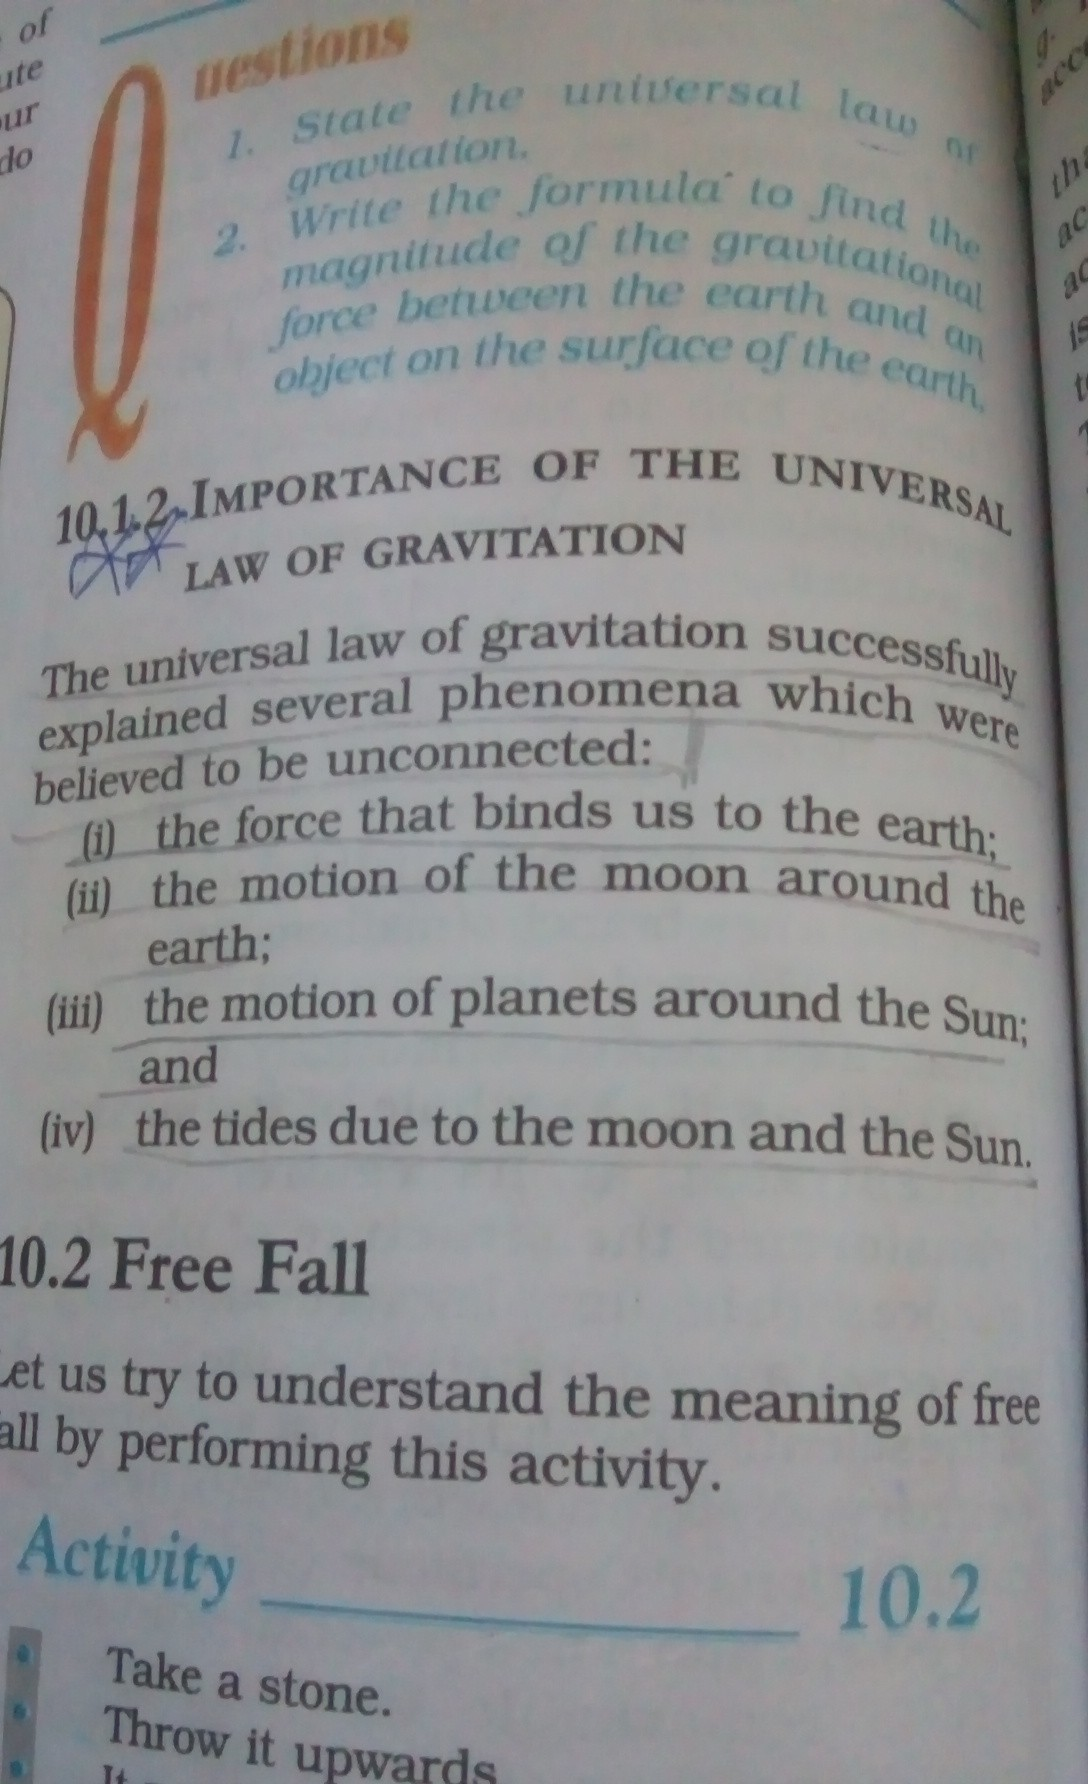 What Is The Importance Of Universal Law Of Gravitation